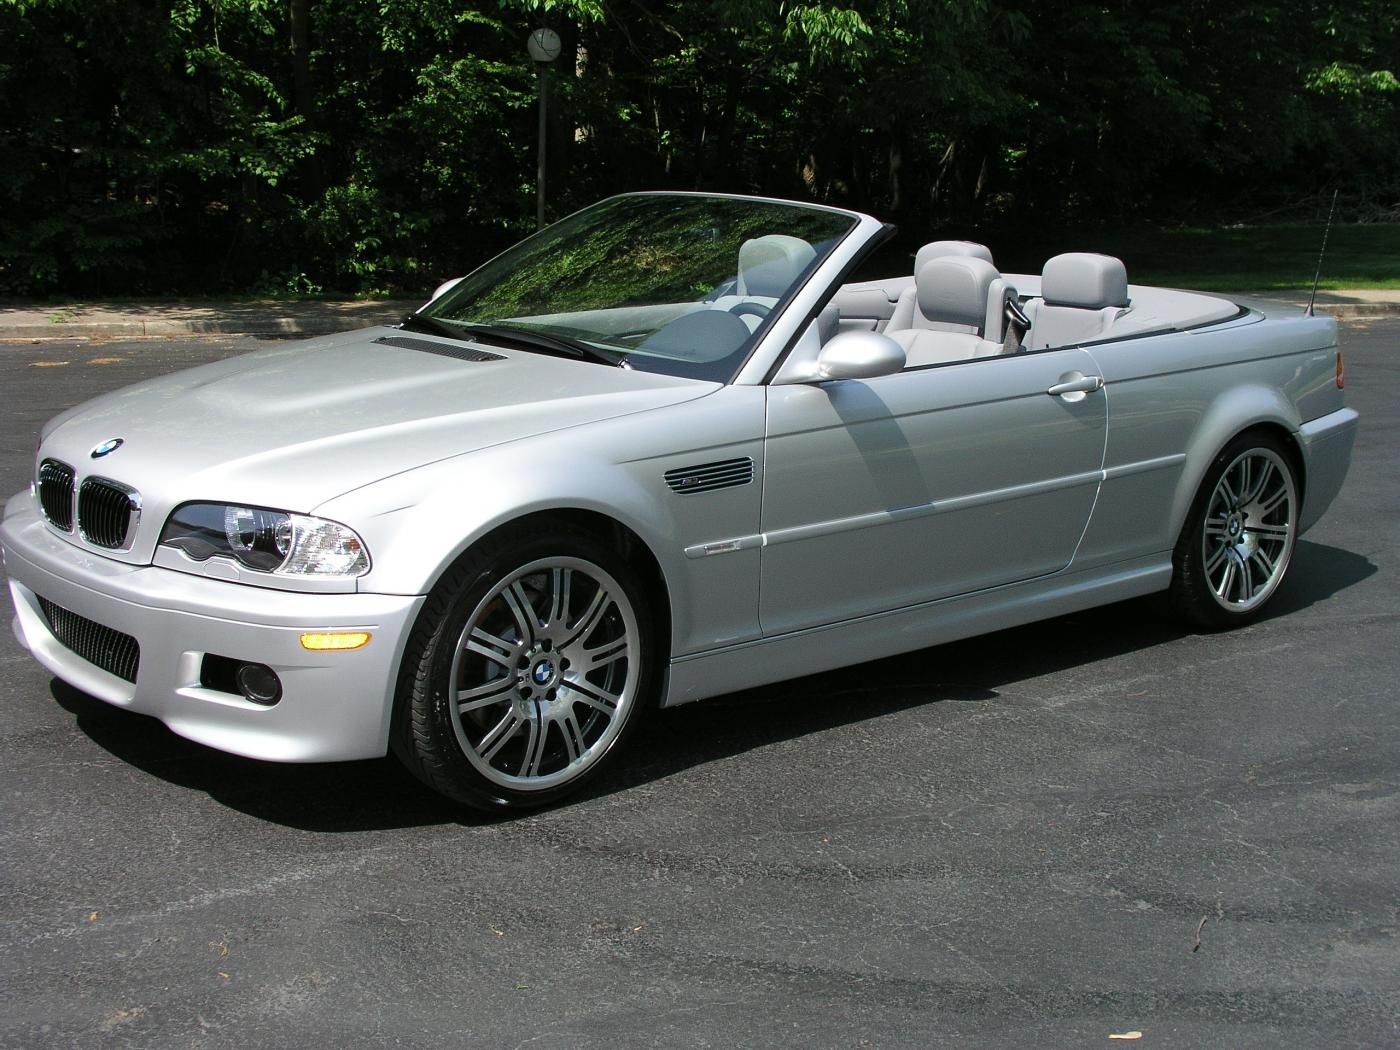 For Sale 2004 M3 Convertible W Smg 47 500 Miles M3 Convertible Bmw Bmw M3 Convertible